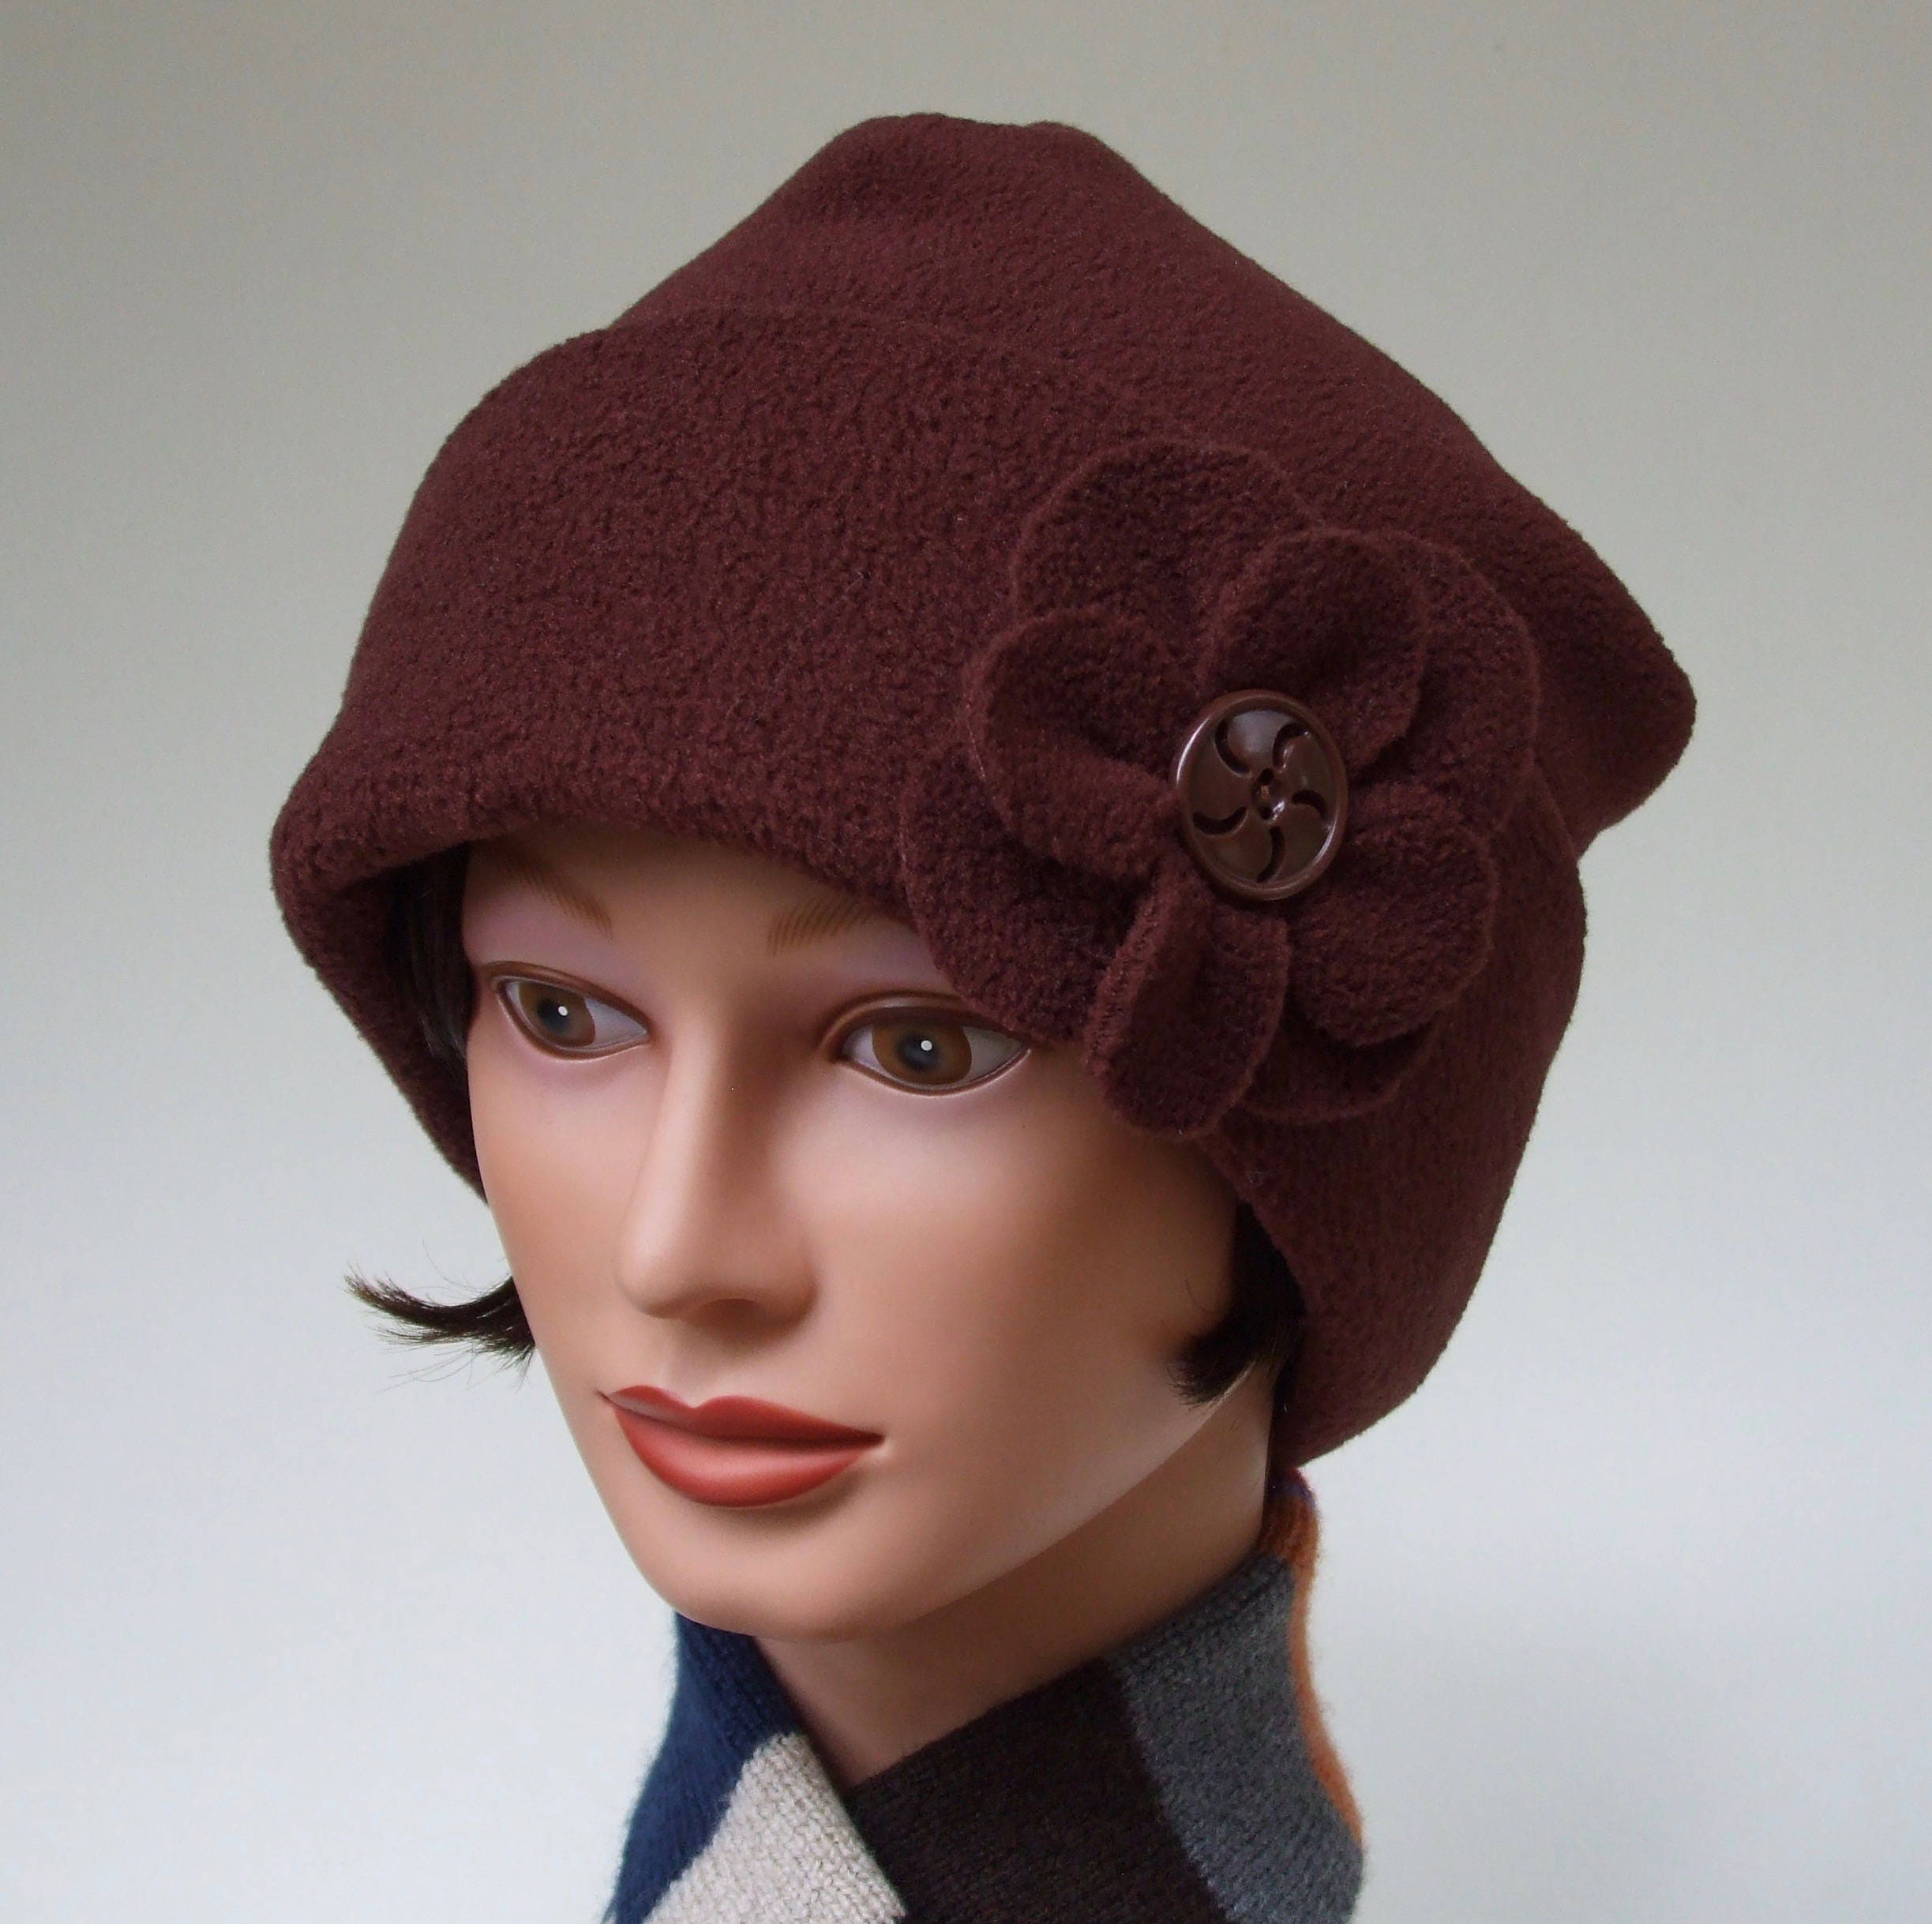 54d543b788c96 Cozy Fleece Hat for Women Roll up Cuff Chocolate Brown with